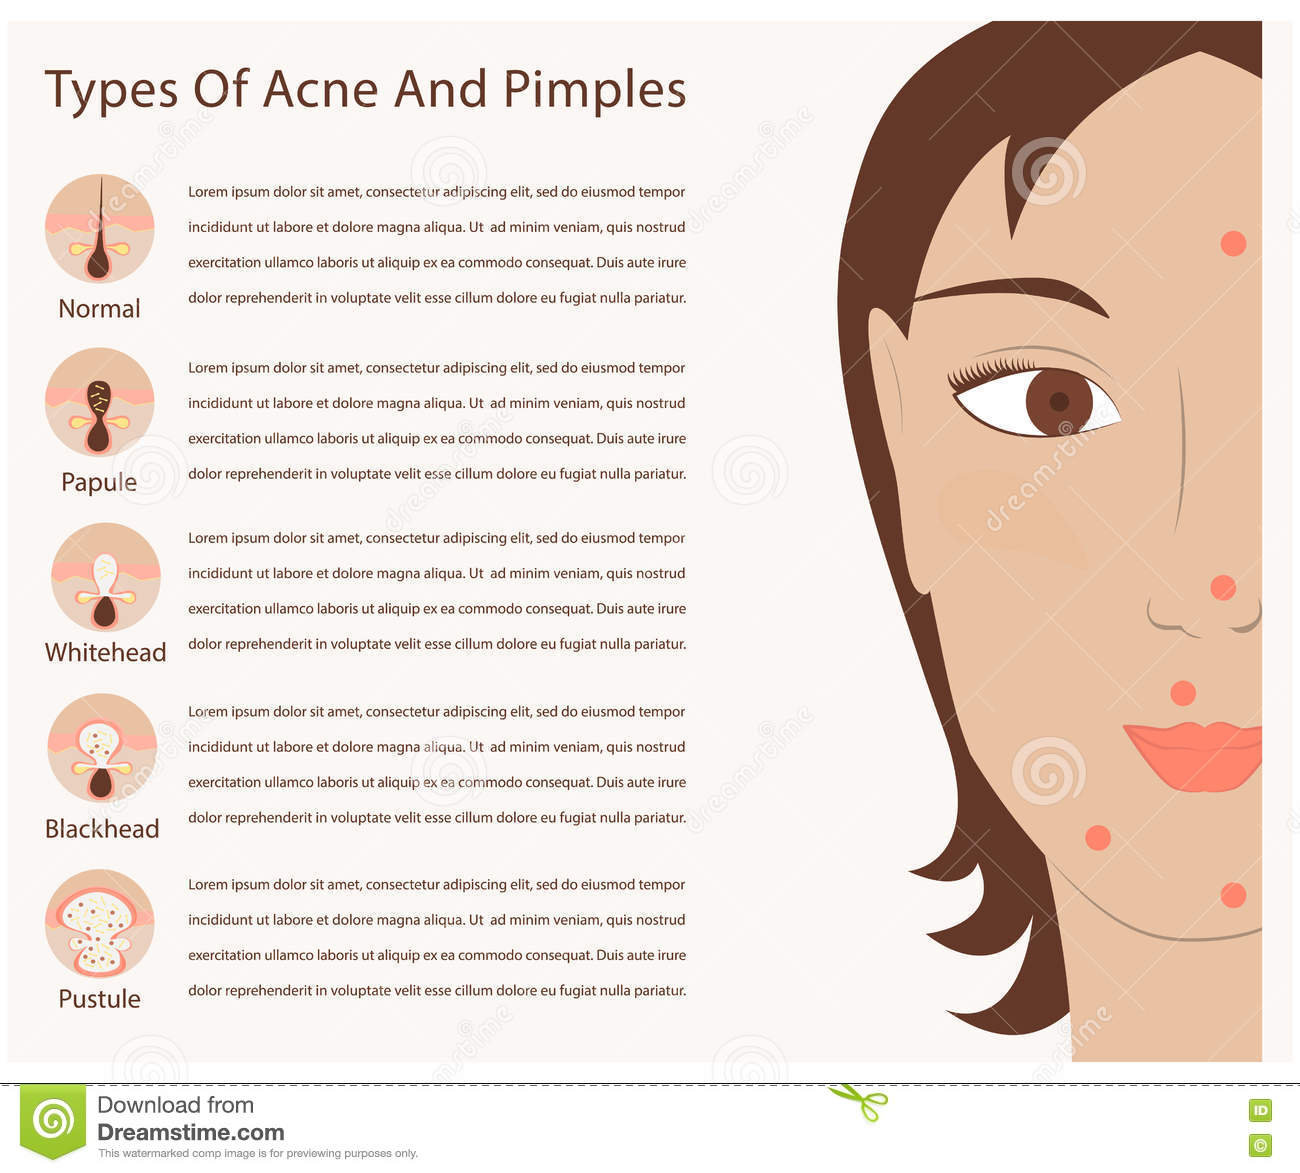 Types of acne and pimples